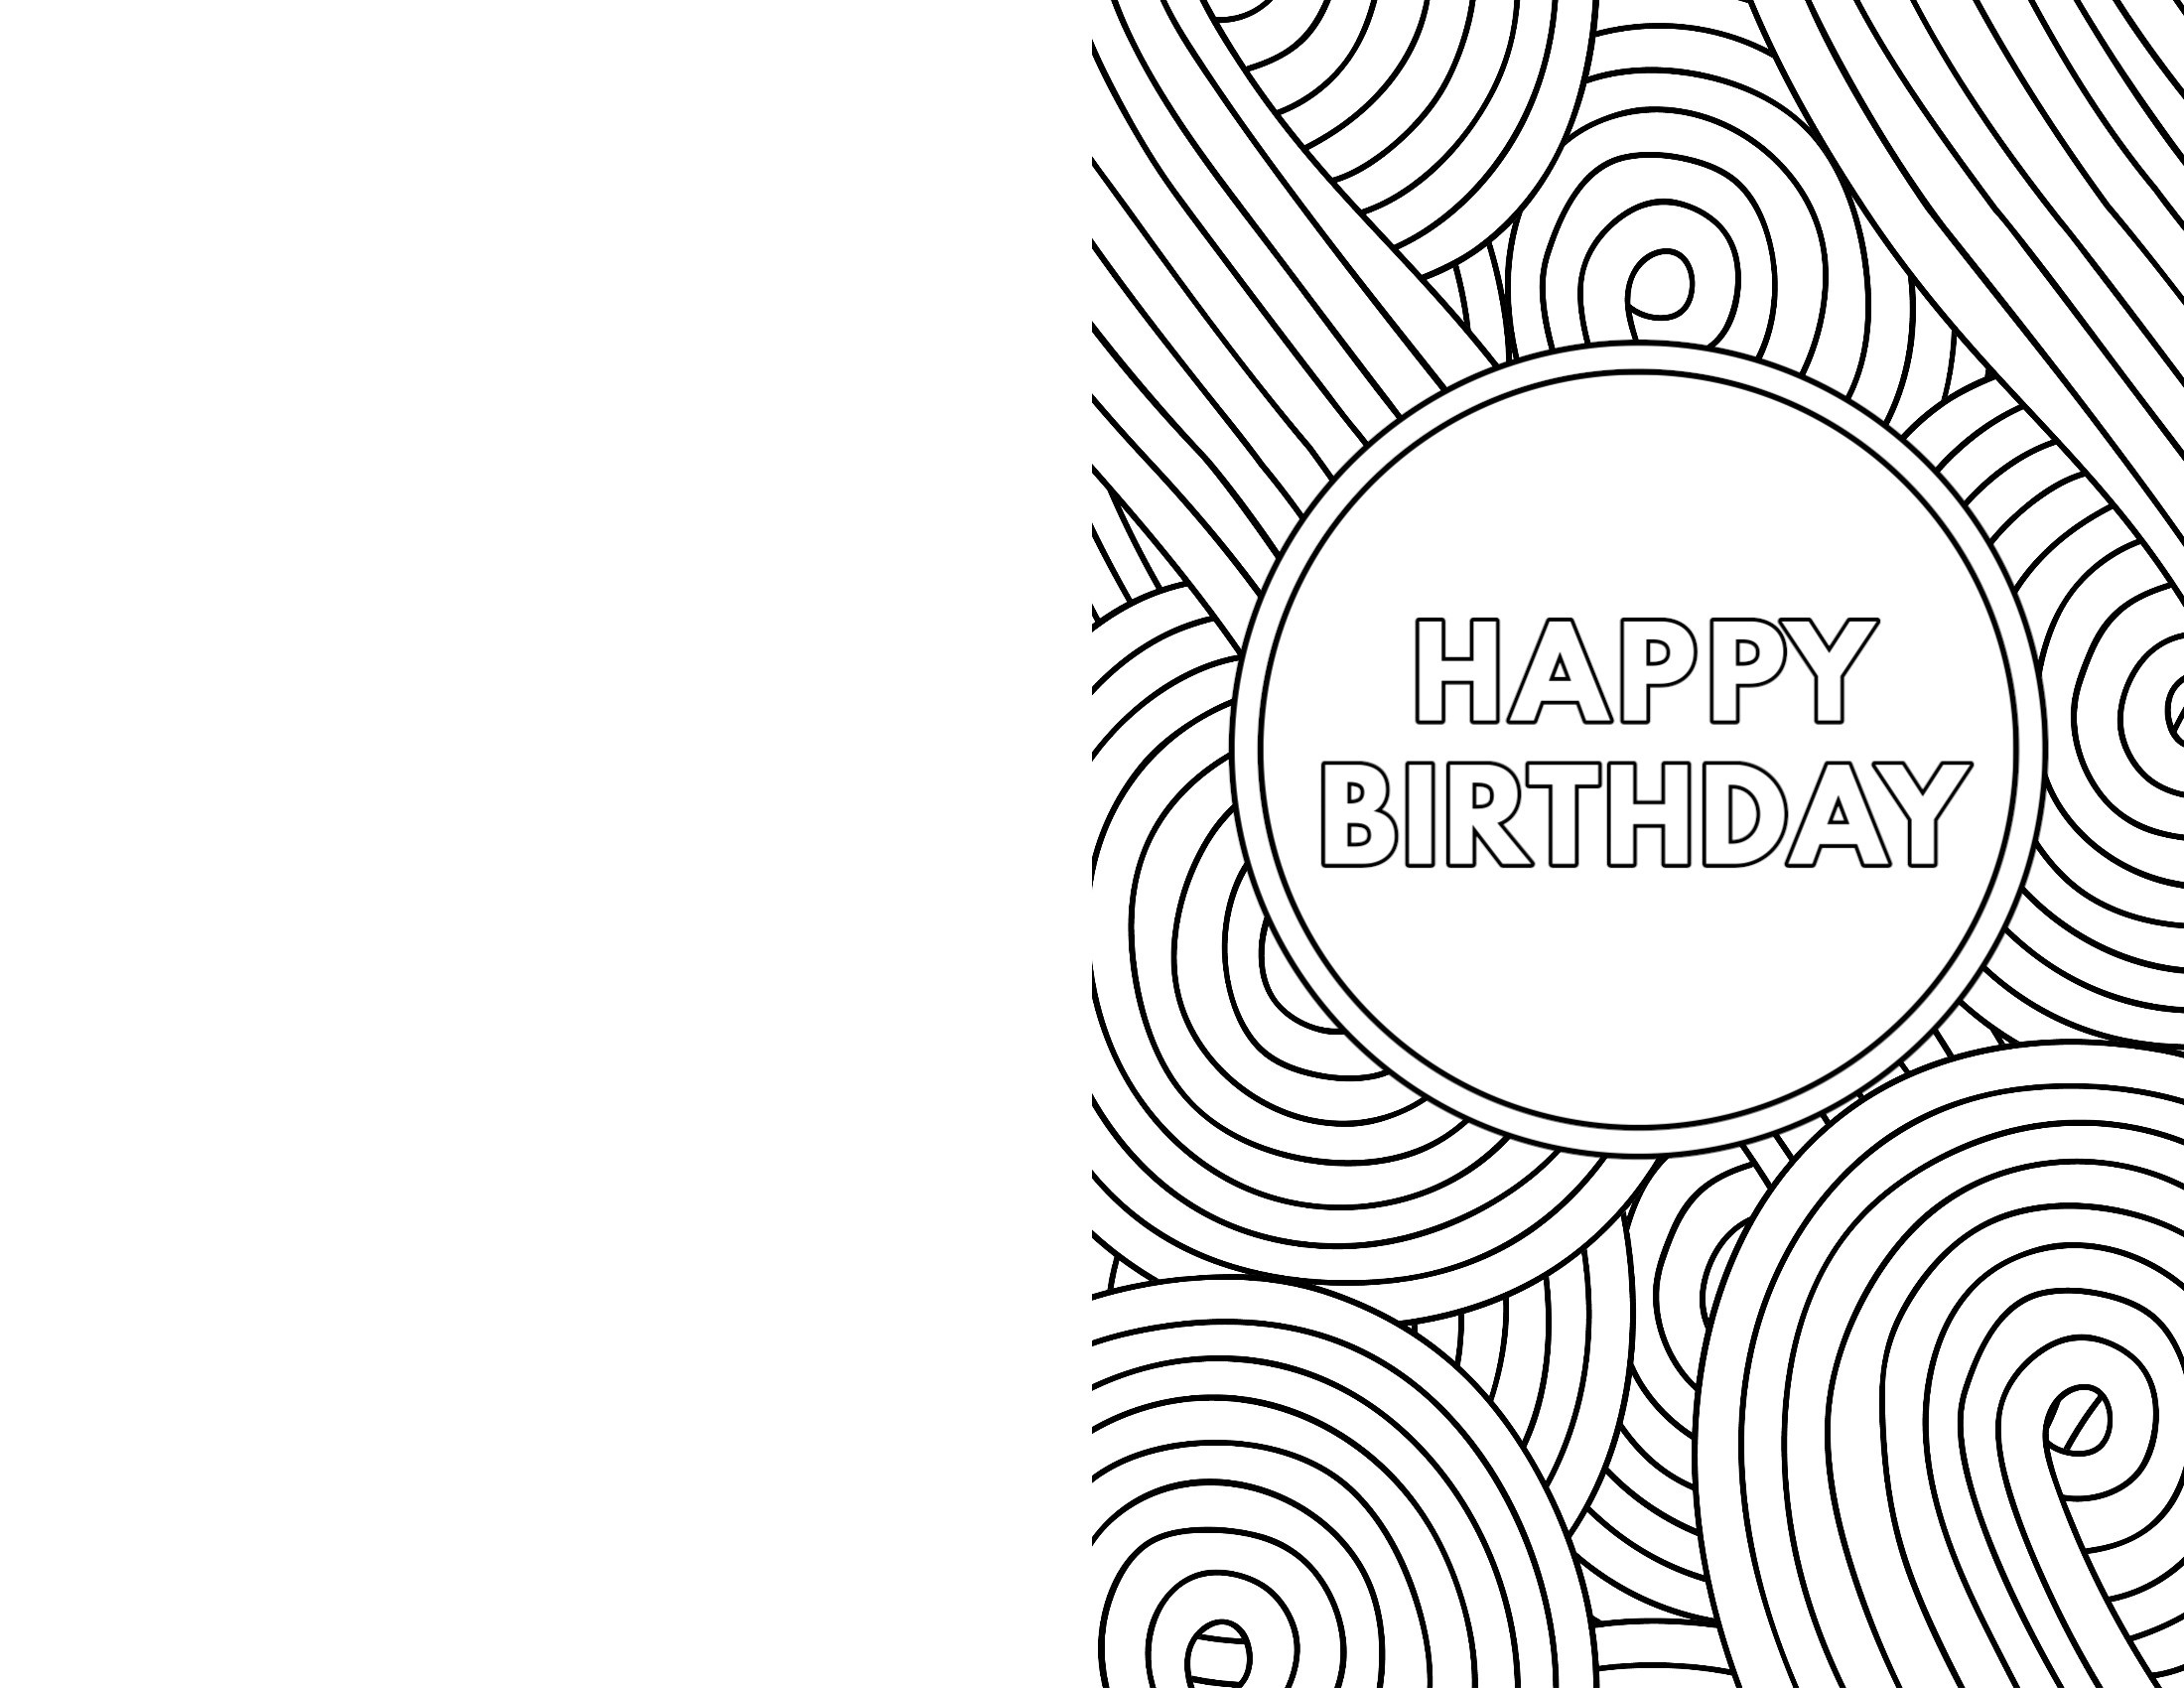 Free Printable Birthday Cards - Paper Trail Design - Free Printable Greeting Cards